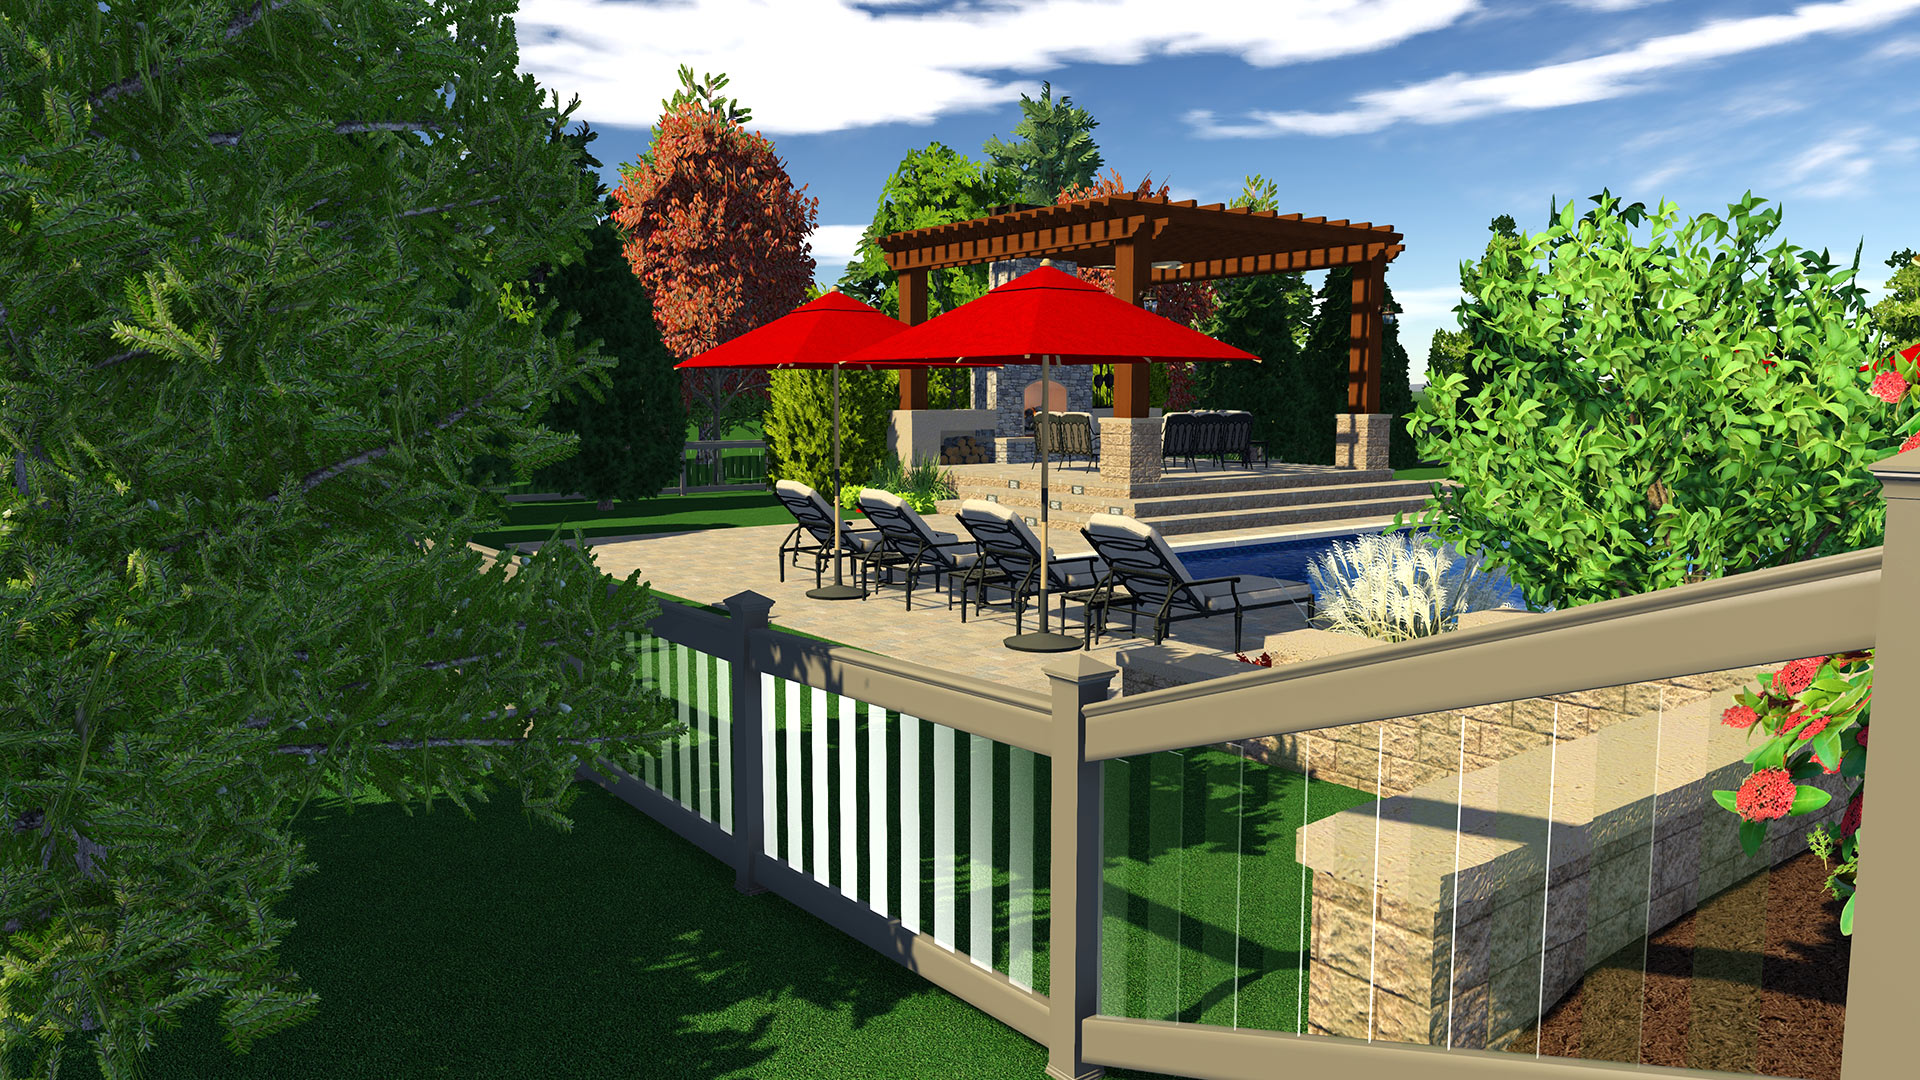 3D Wall and Fence Design Software